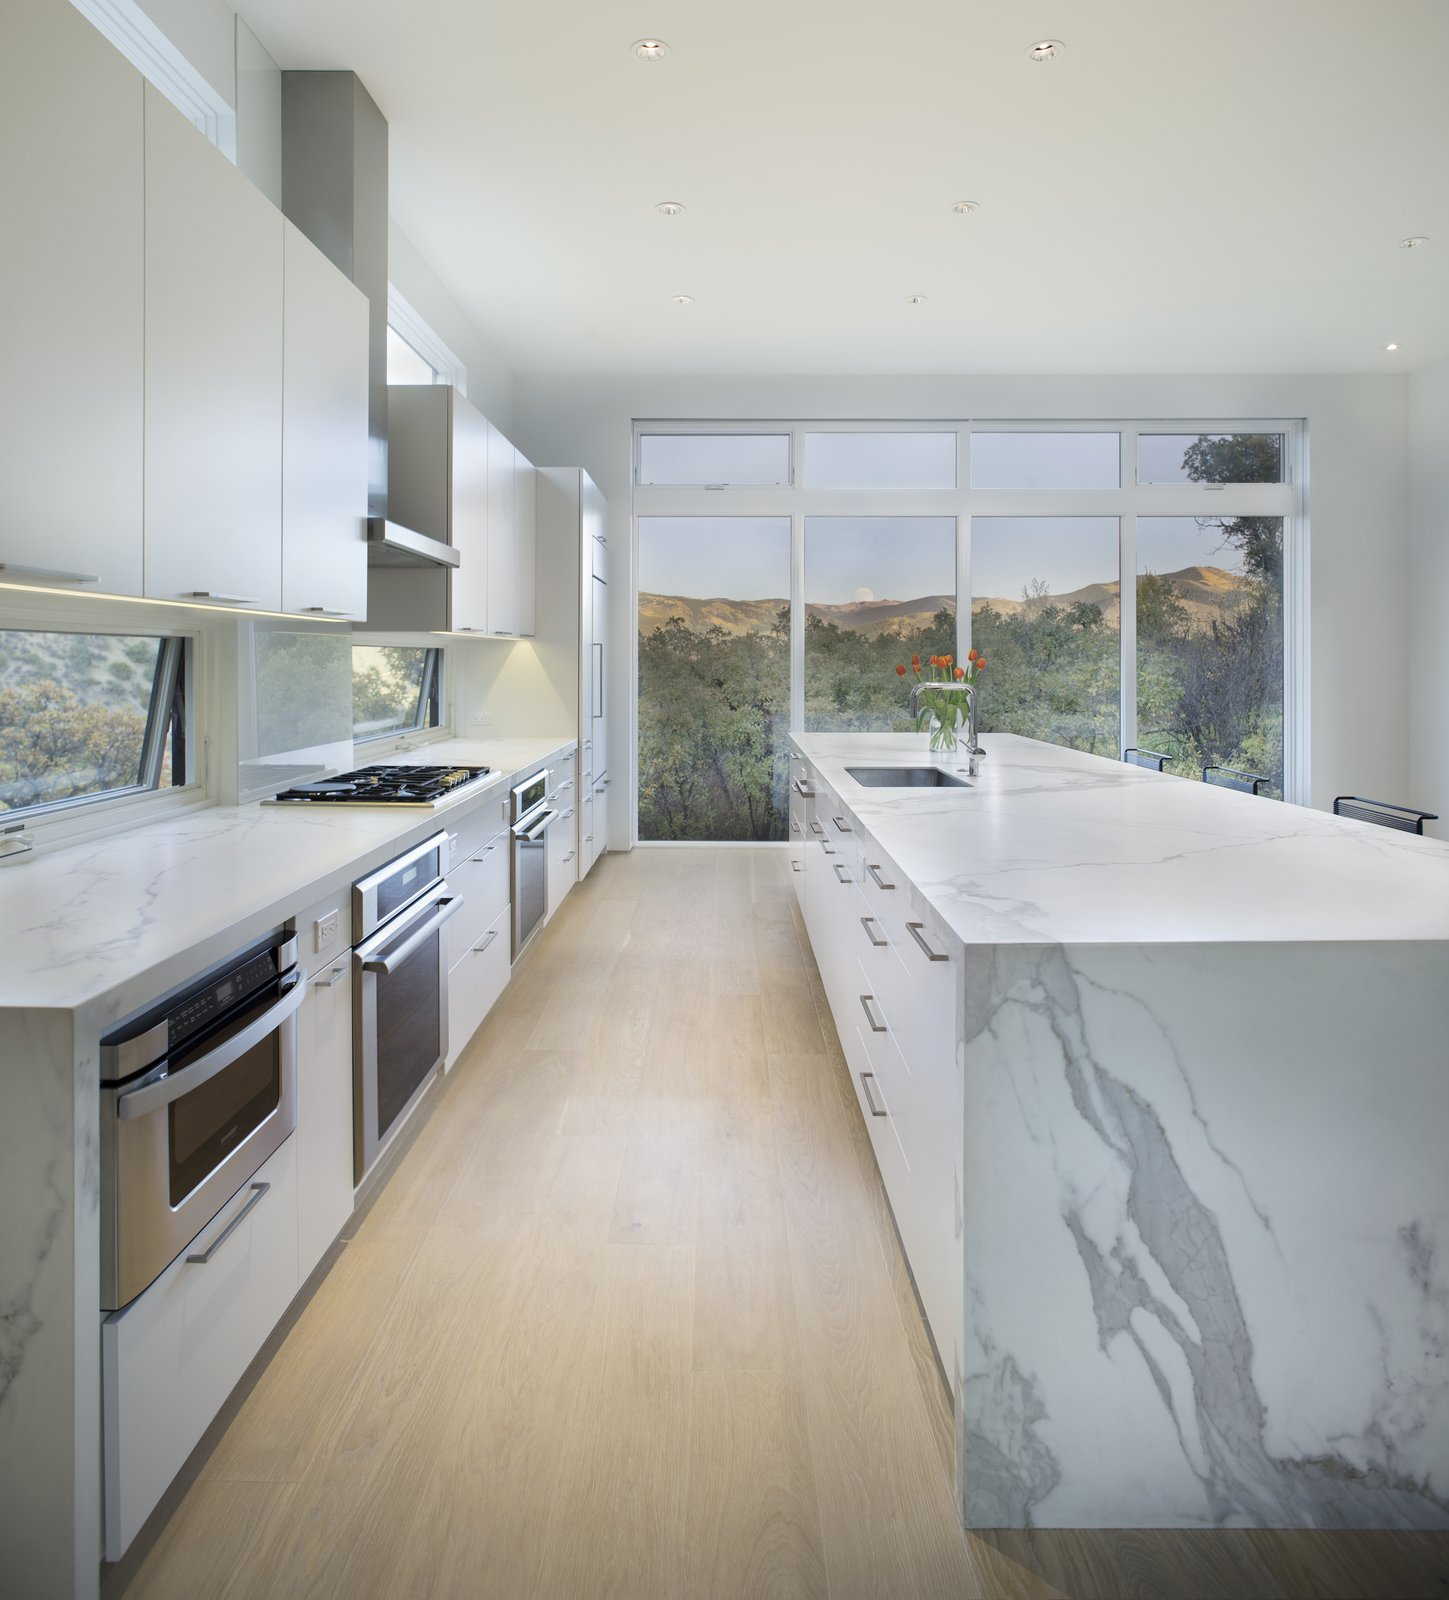 Kitchen, Marble Counter, White Cabinet, and Light Hardwood Floor  Kitchen from Black Magic